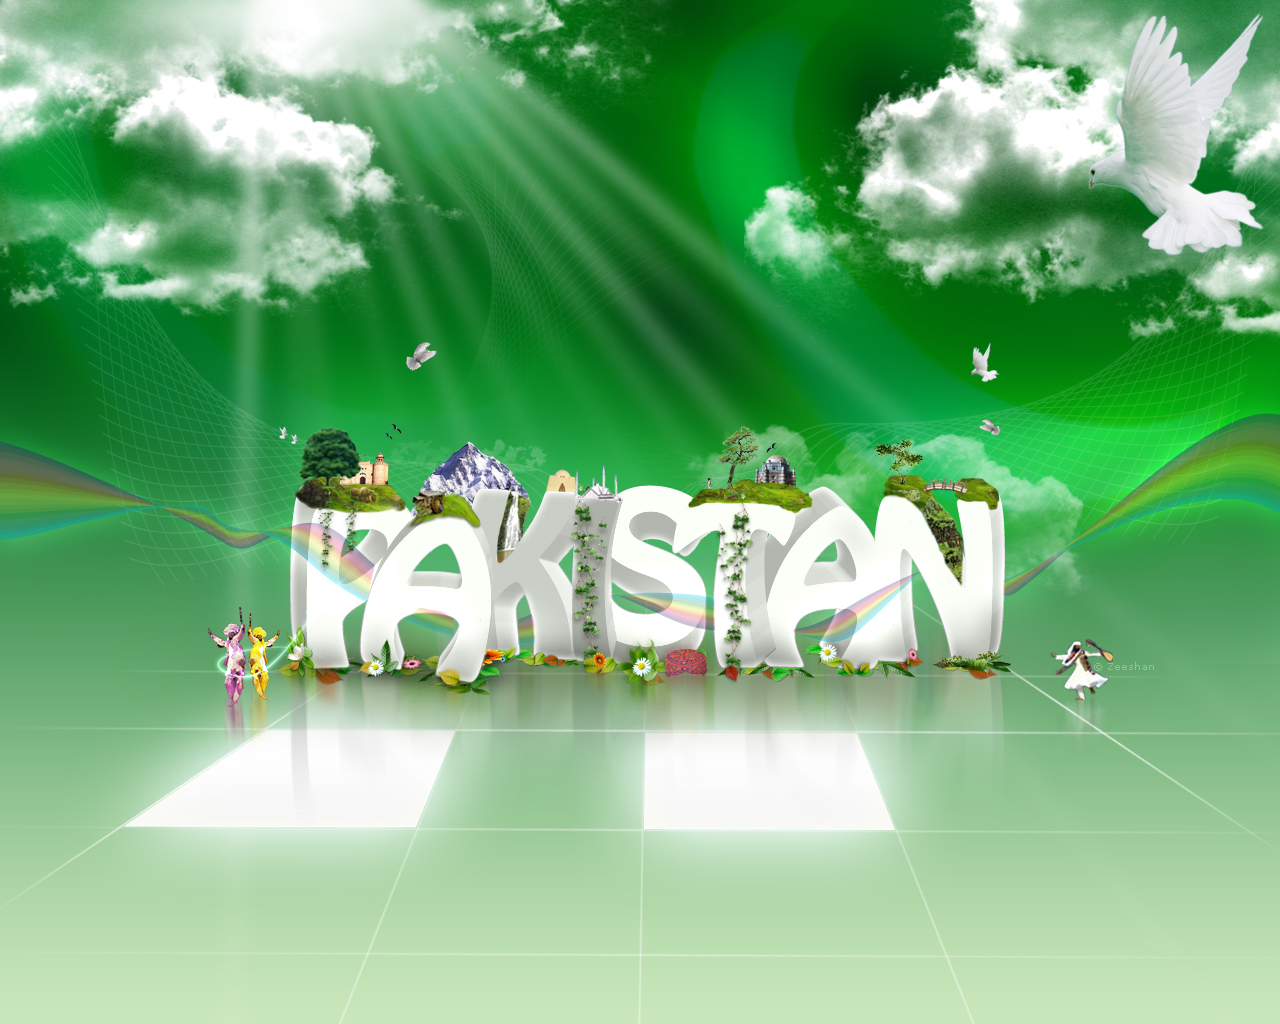 http://3.bp.blogspot.com/-GADprb-HYPg/TkbyIsz8QaI/AAAAAAAABv8/kqwlyc8hx0s/s1600/top+10+HD+Computer+and+Mobile+Wallpapers+Of+Pakistani+Flag+-+Happy+Independance+Day+-+14+august+%25286%2529.jpg